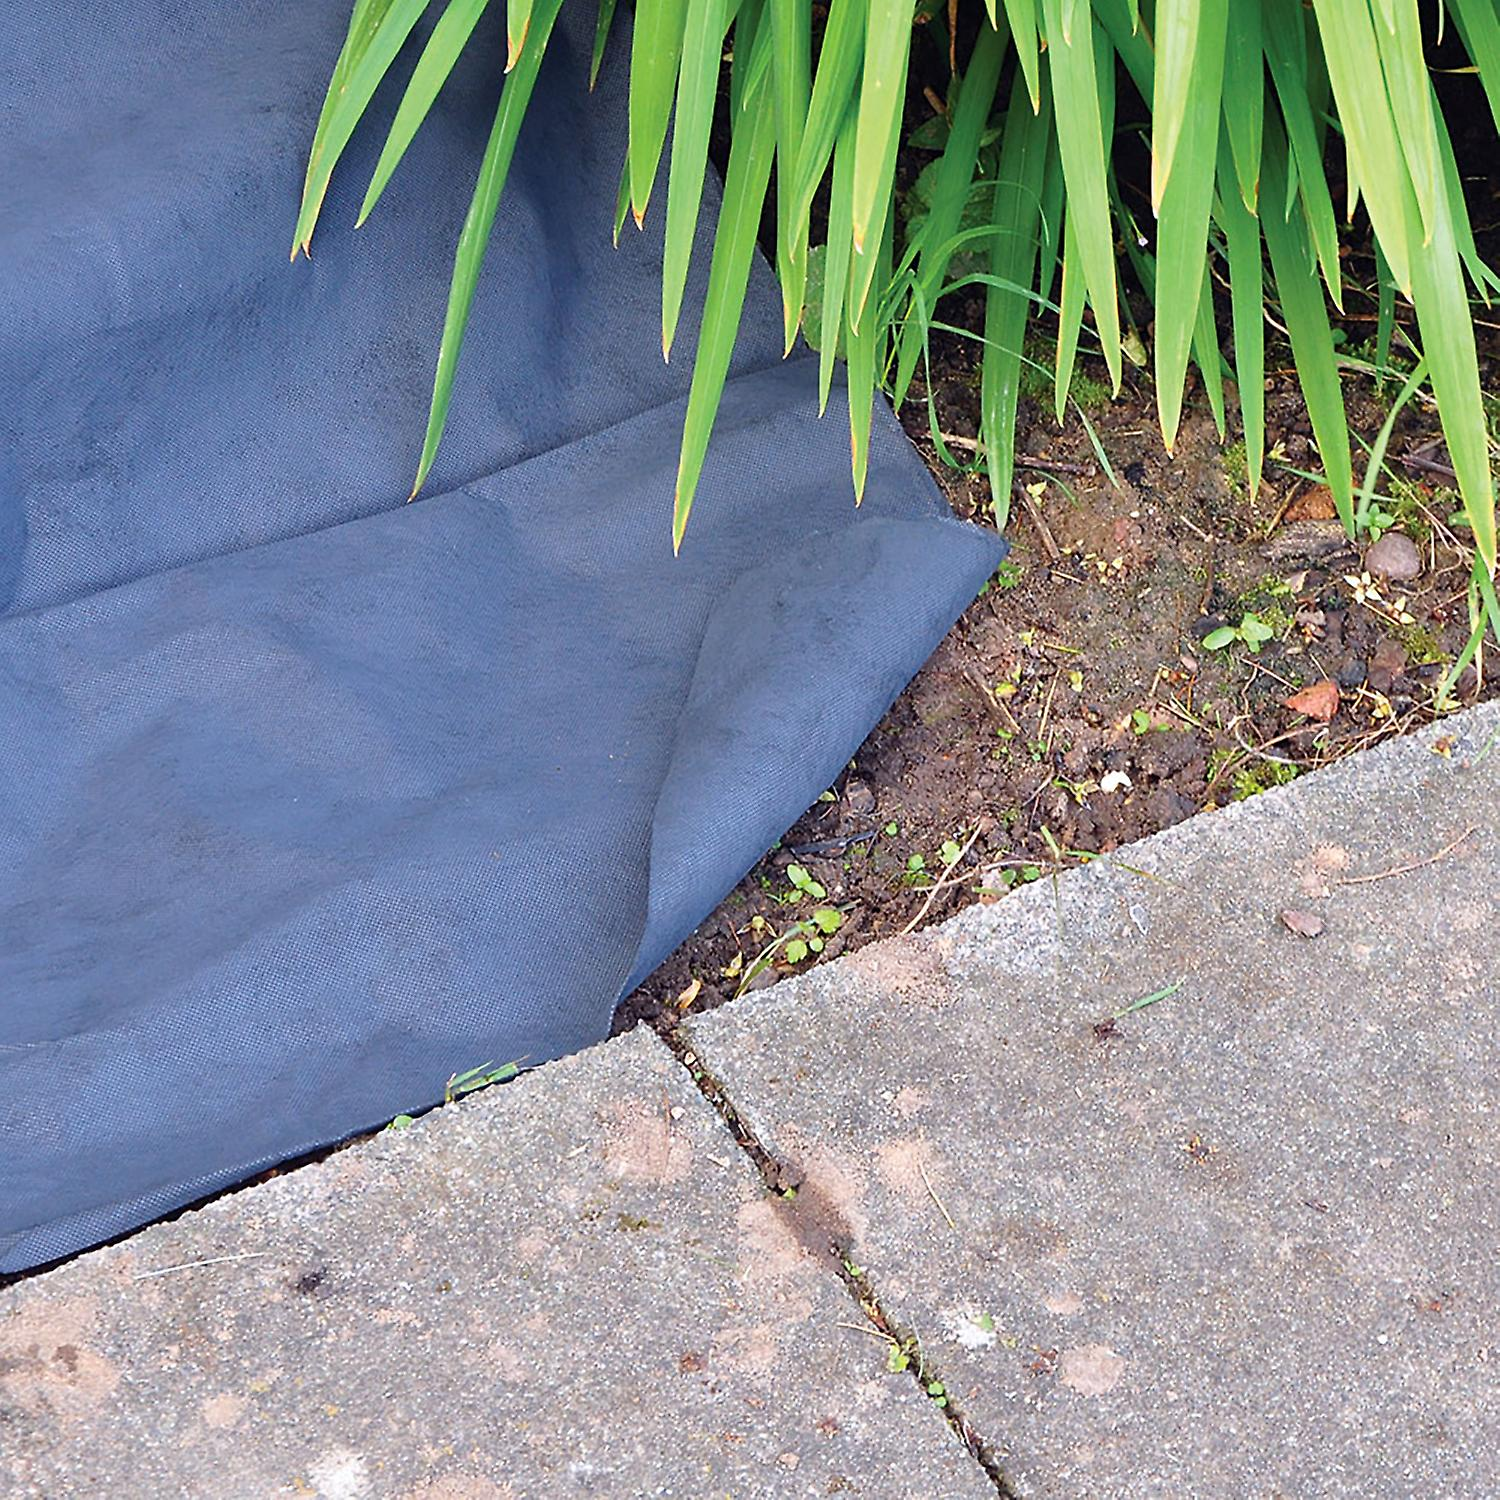 Kingfisher WG1 50gsm Weed Guard Control Membrane Cloth Fabric sheet Roll 8m x 1.5m - Ideal for Borders, Paving, Paths, Decking and Landscaping